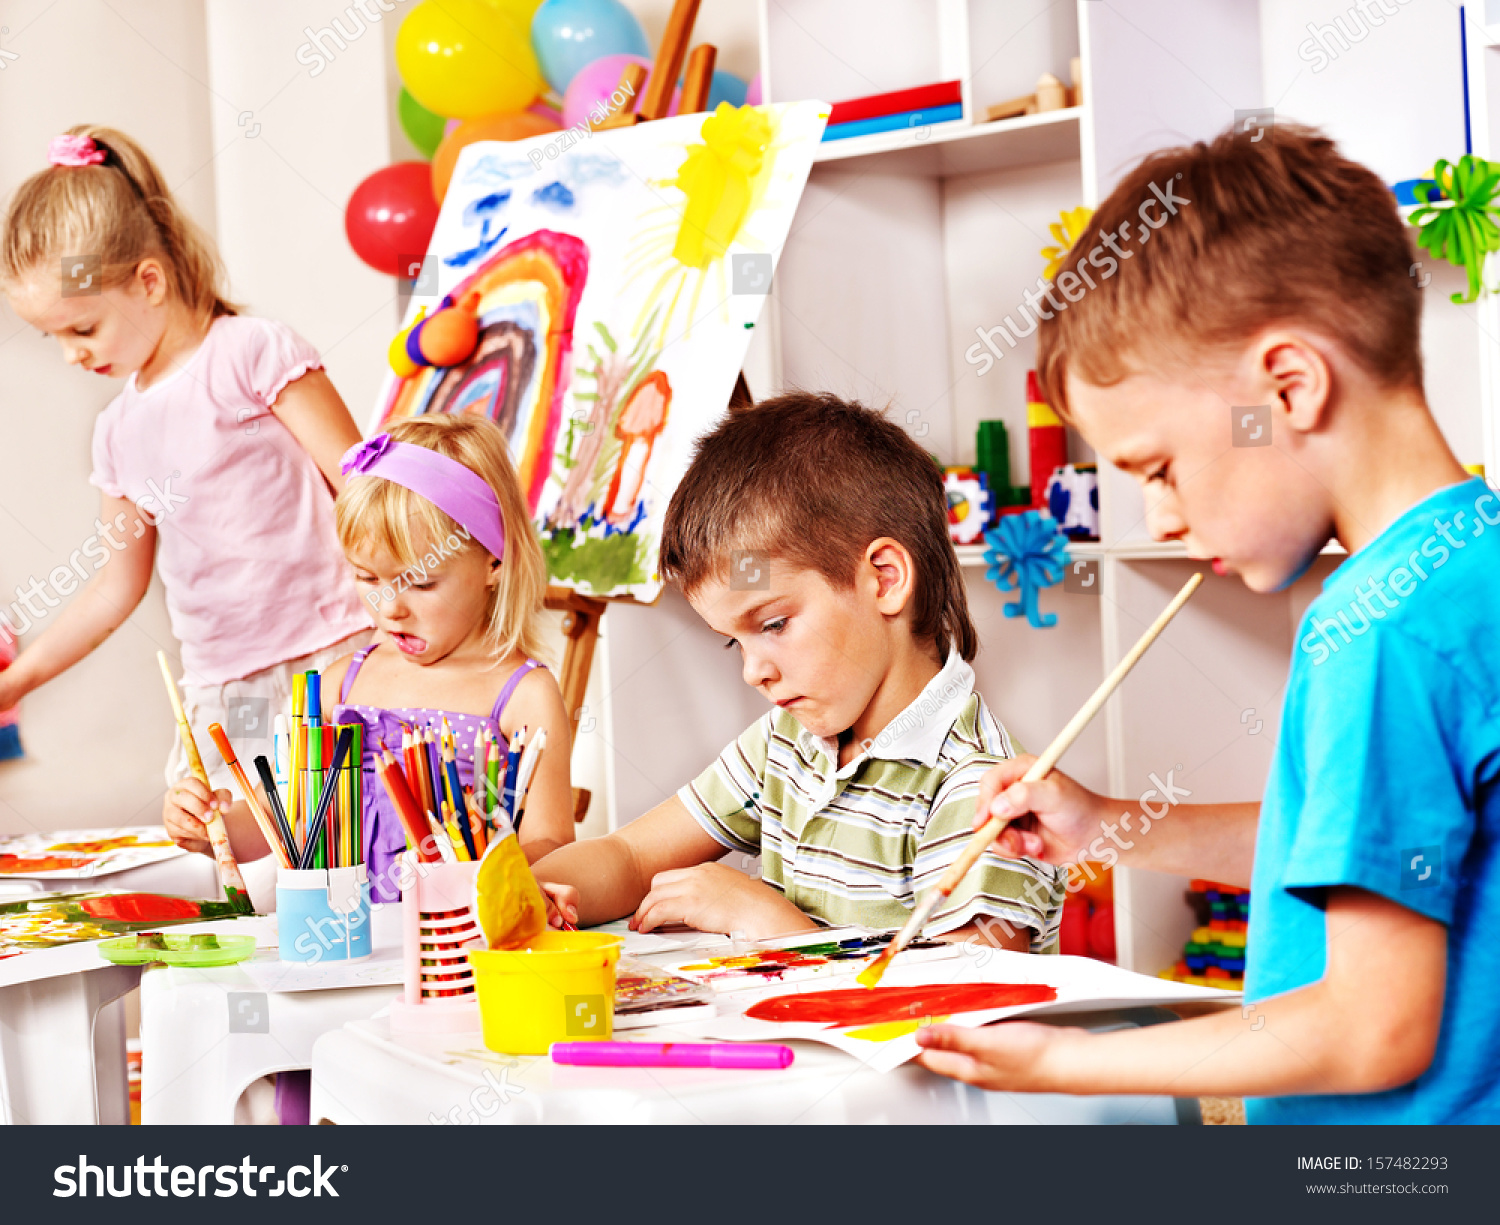 Children Painting Easel School Education Stock Photo